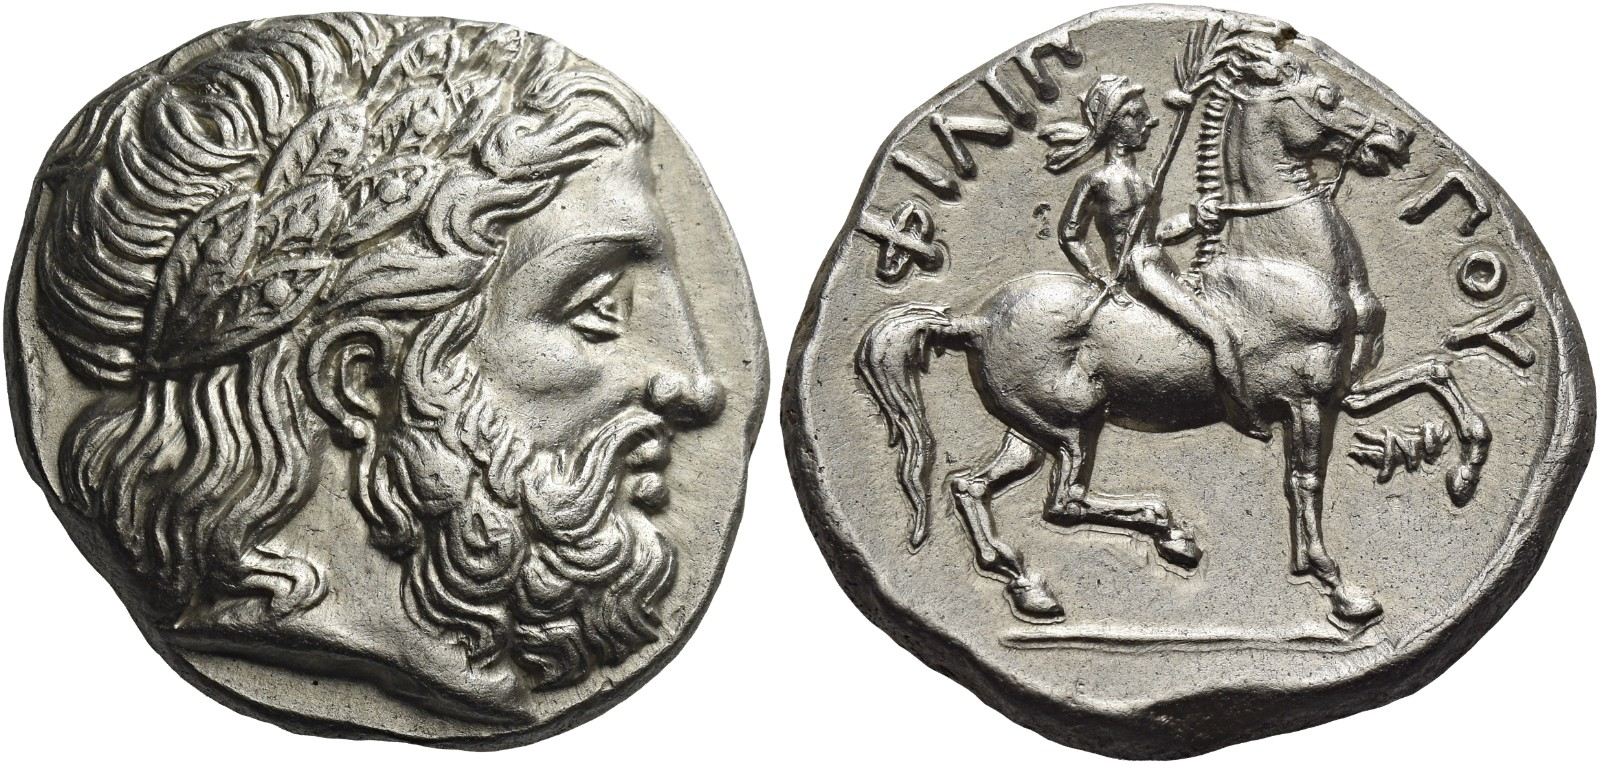 CoinArchives.com Search Results : Macedonia and Philip II